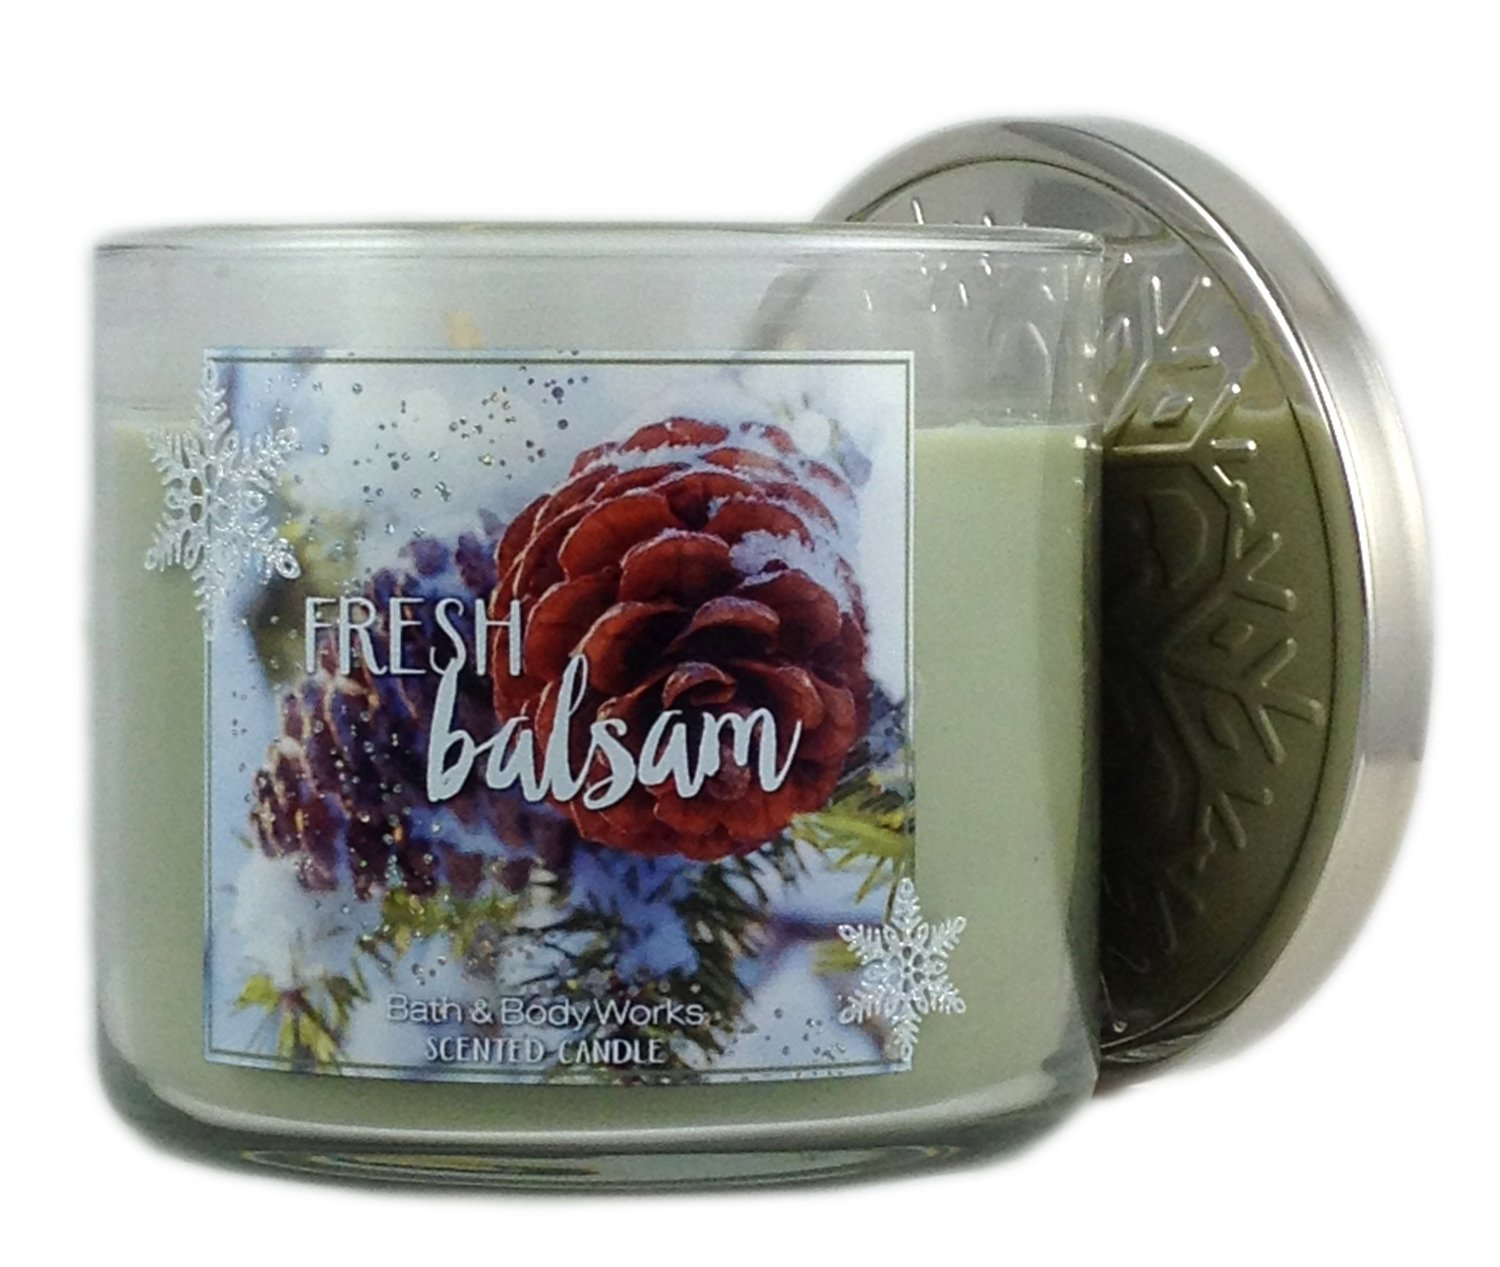 Bath and Body Works Fresh Balsam 3-wick candle